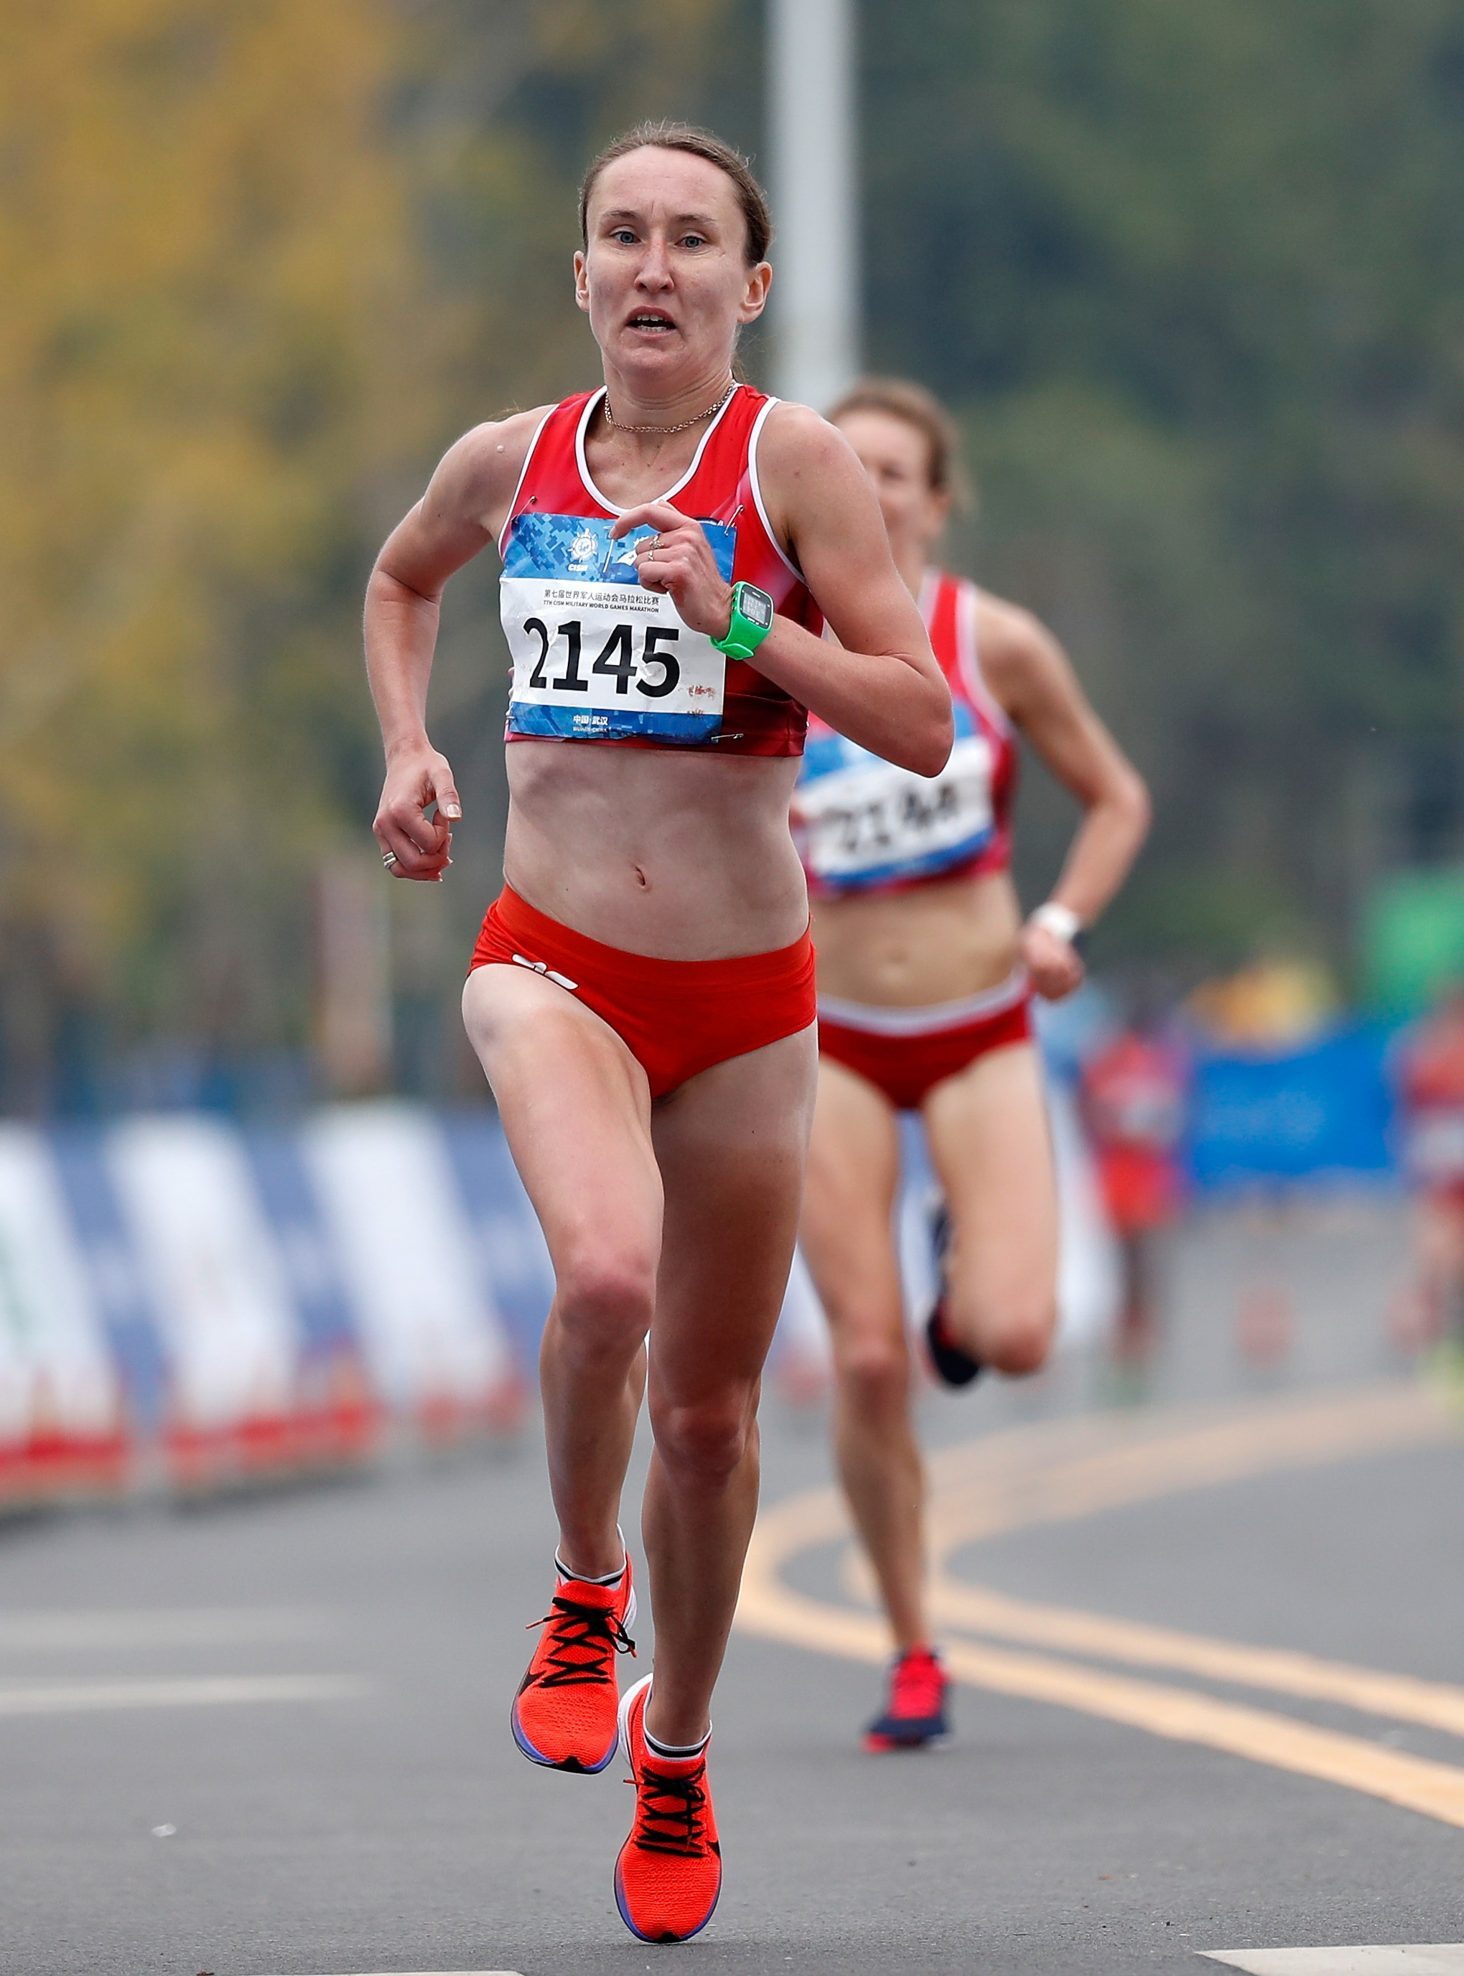 (191027) -- WUHAN, Oct. 27, 2019 (Xinhua) -- Izabela Paszkiewicz of Poland competes during the women's marathon individual final of track and field at the 7th CISM Military World Games in Wuhan, capital of central China's Hubei Province, Oct. 27, 2019. (Xinhua/Wang Lili)